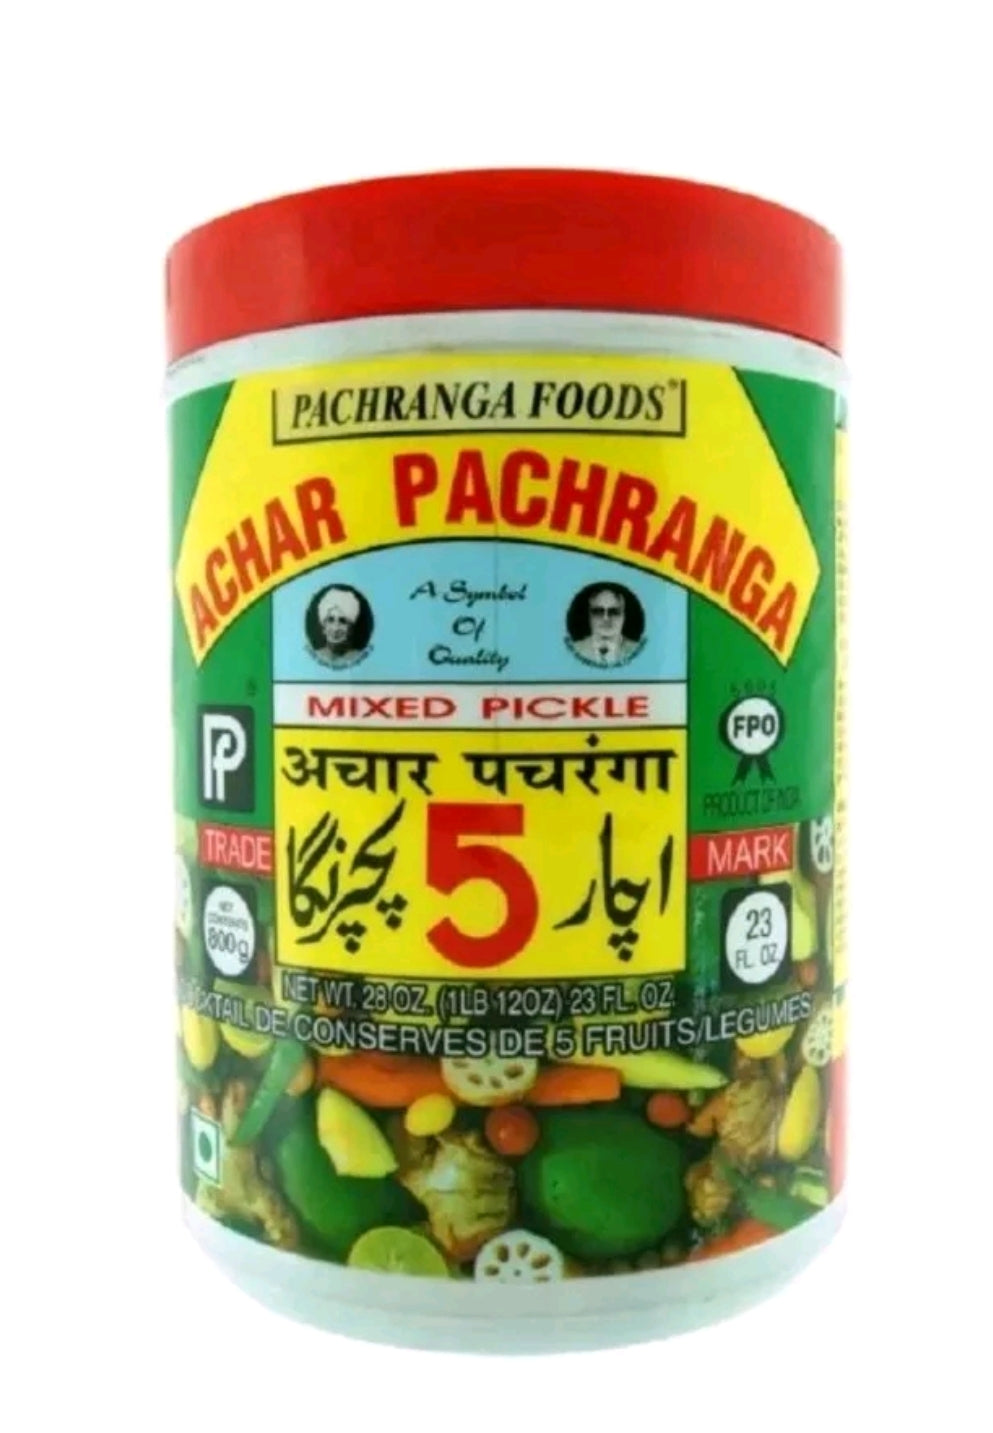 Pachranga Mixed Pickle 800g